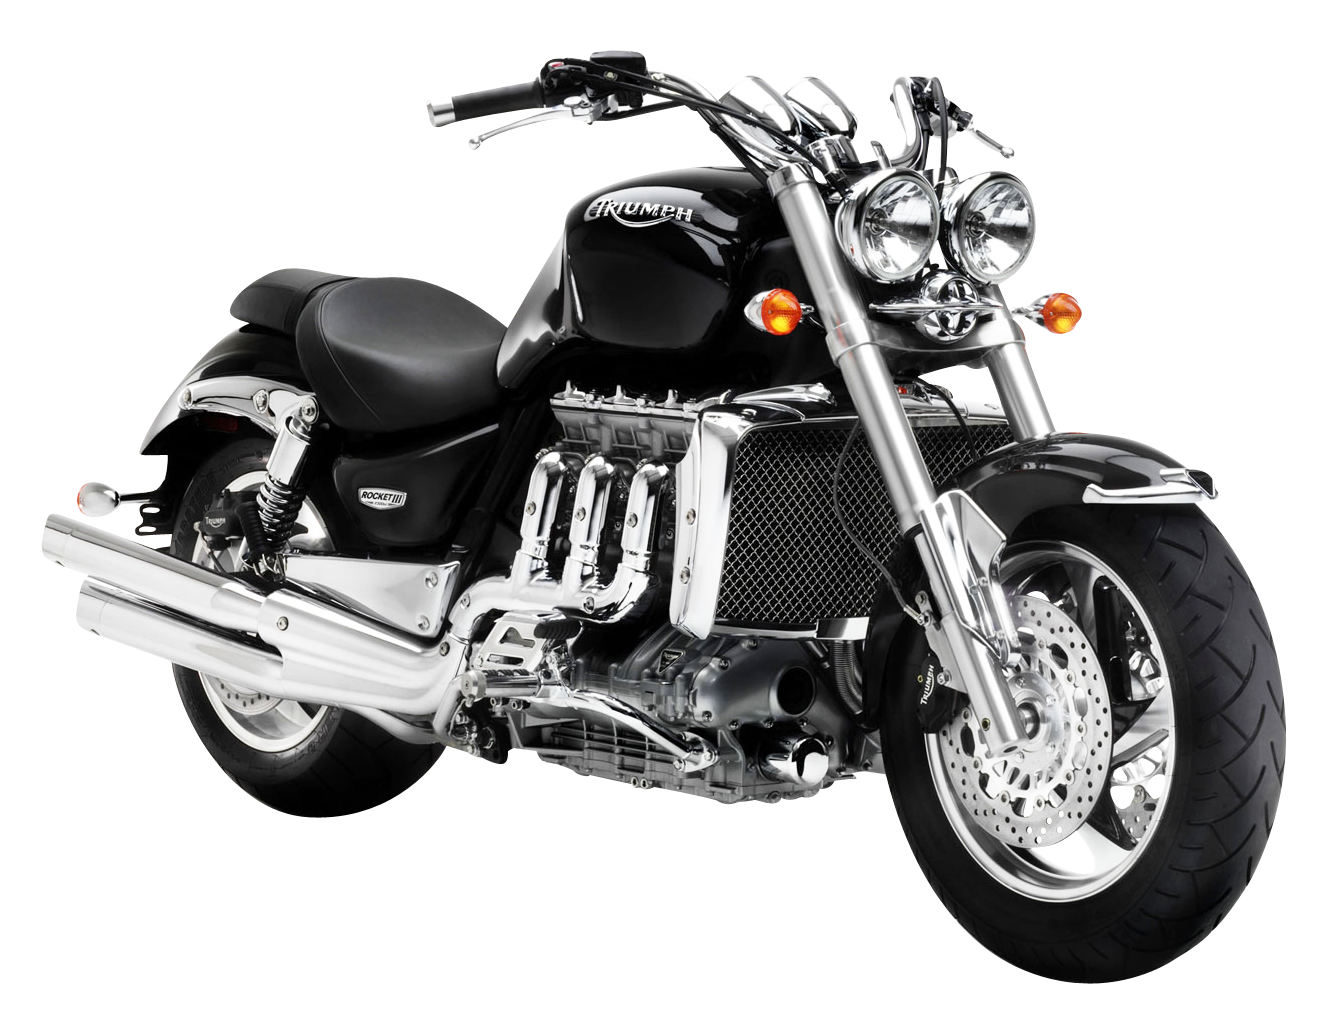 Triumph motorcycle png. Motorcycles transparent images rocket